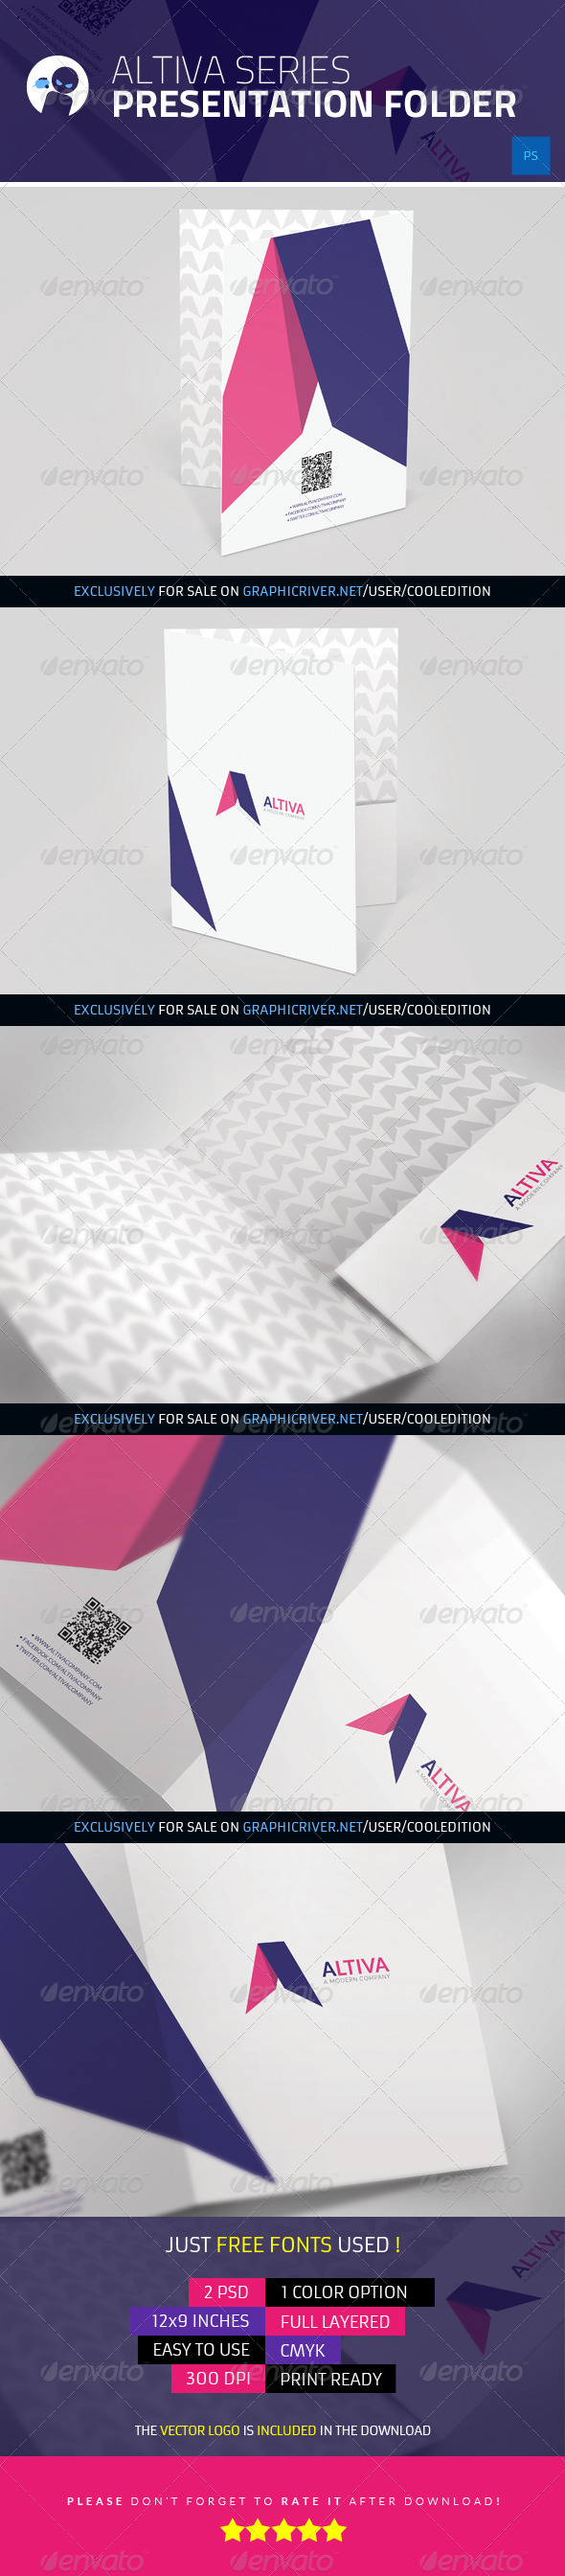 GraphicRiver Altiva Series Presentation Folder 3666137